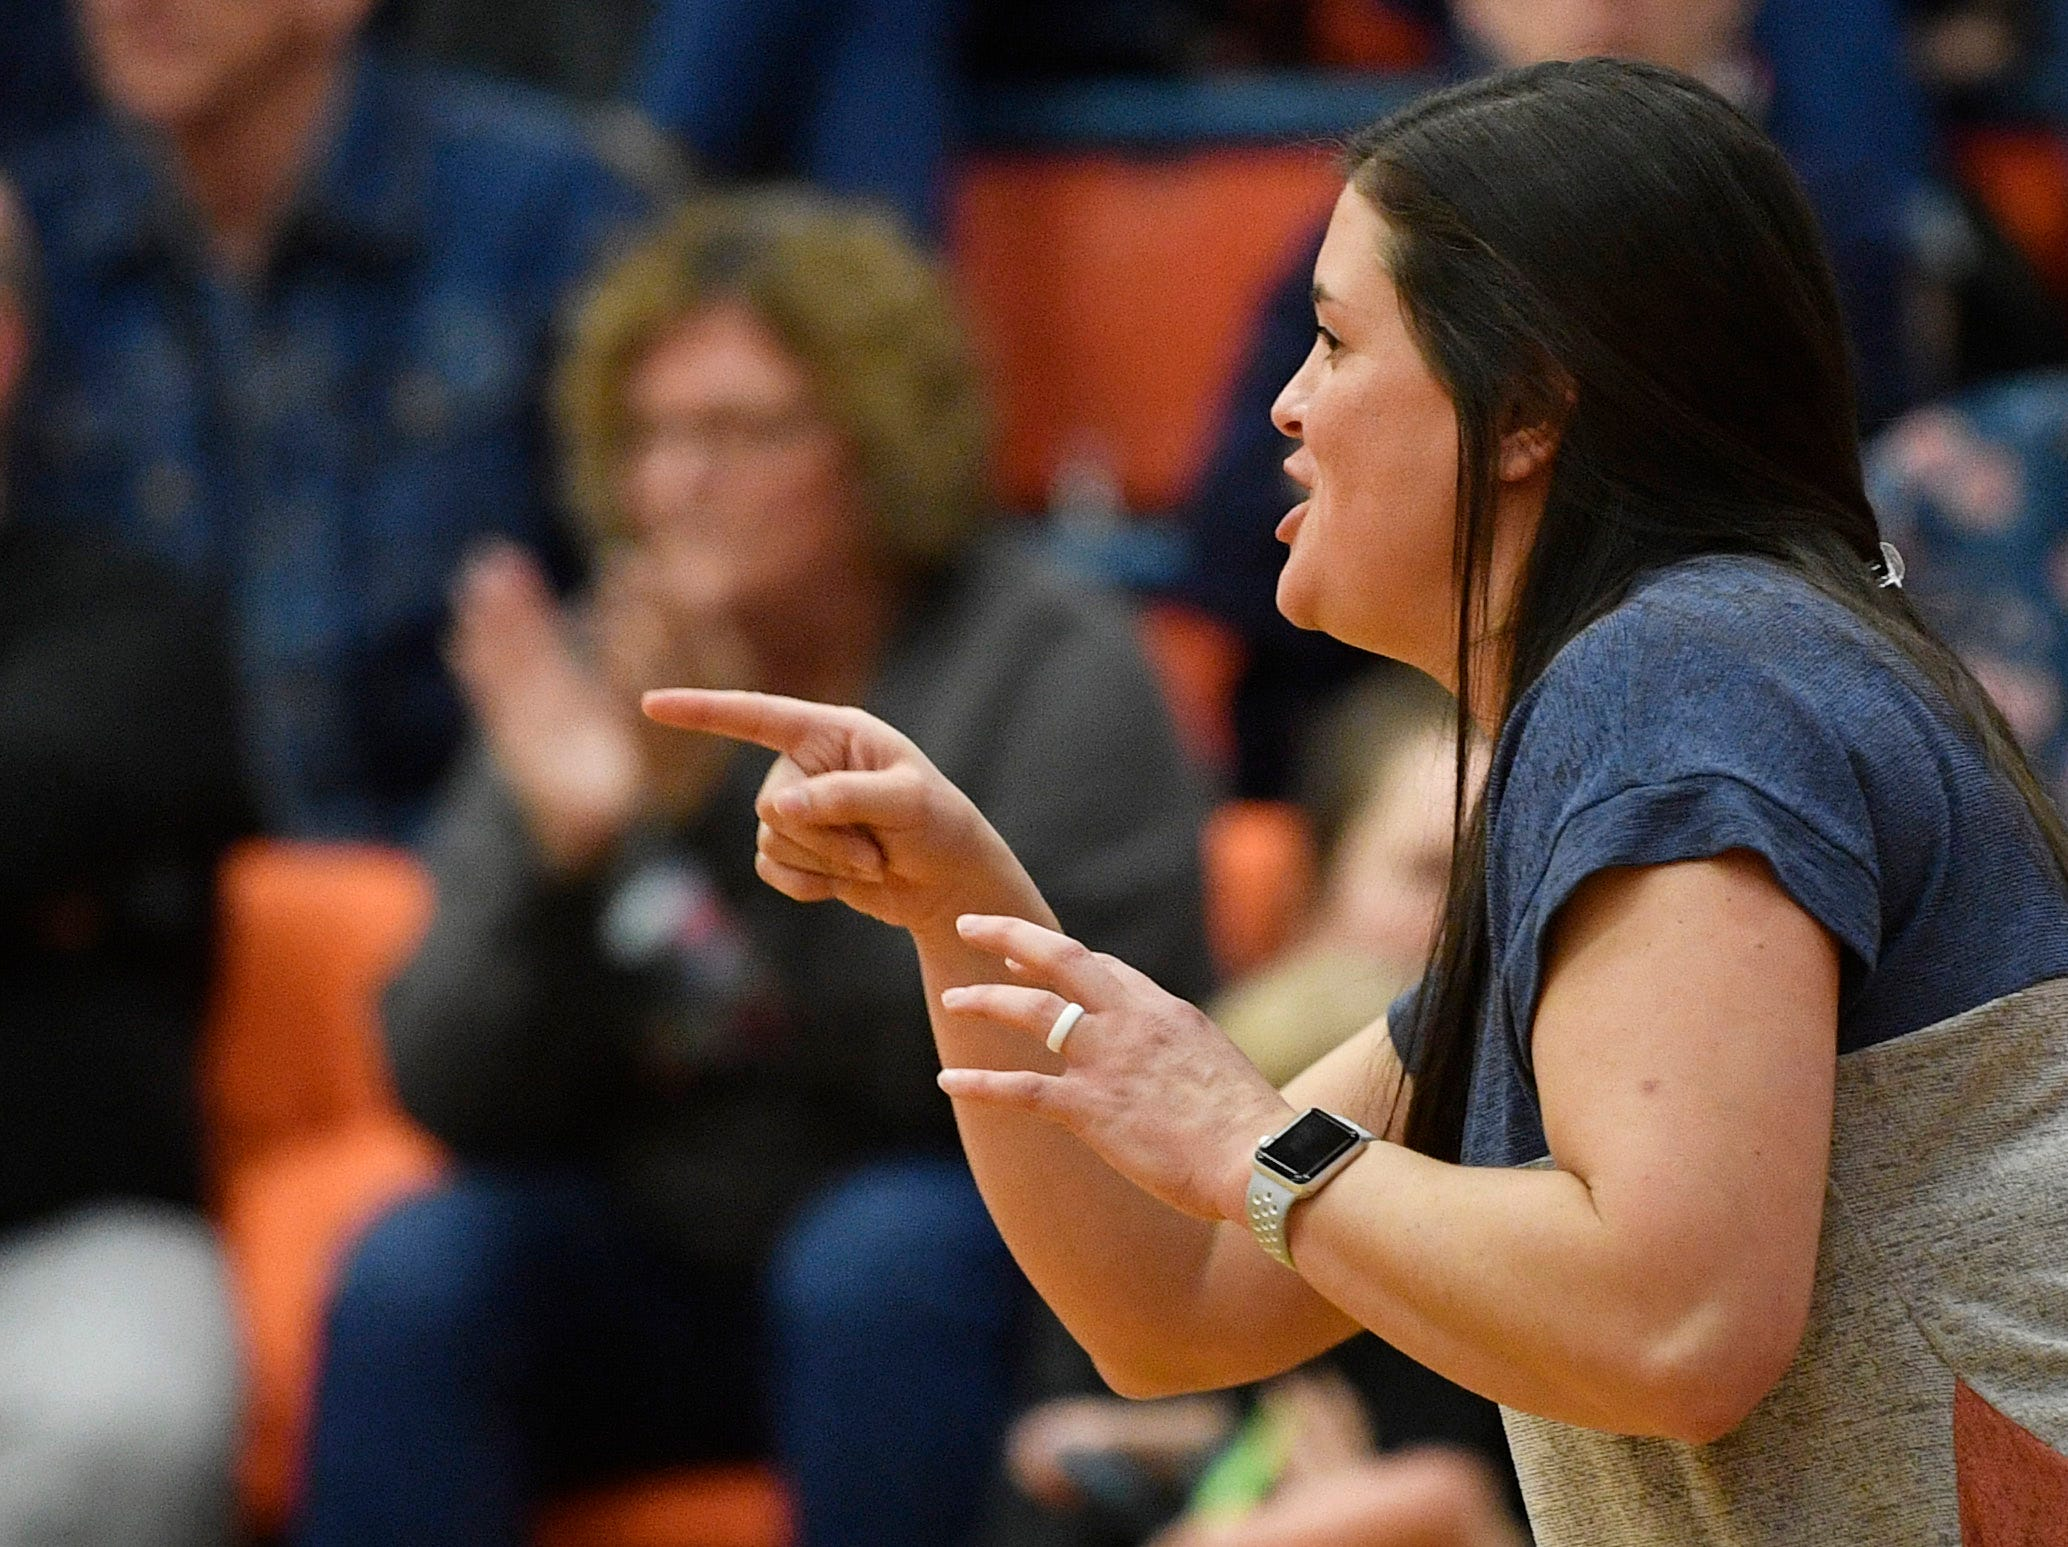 Erin Webb coached the Lady Cougars' 61-56 comeback win over Brentwood in the District 11-AAA girls championship. Monday, Feb. 18, 2019, in Dickson, Tenn.